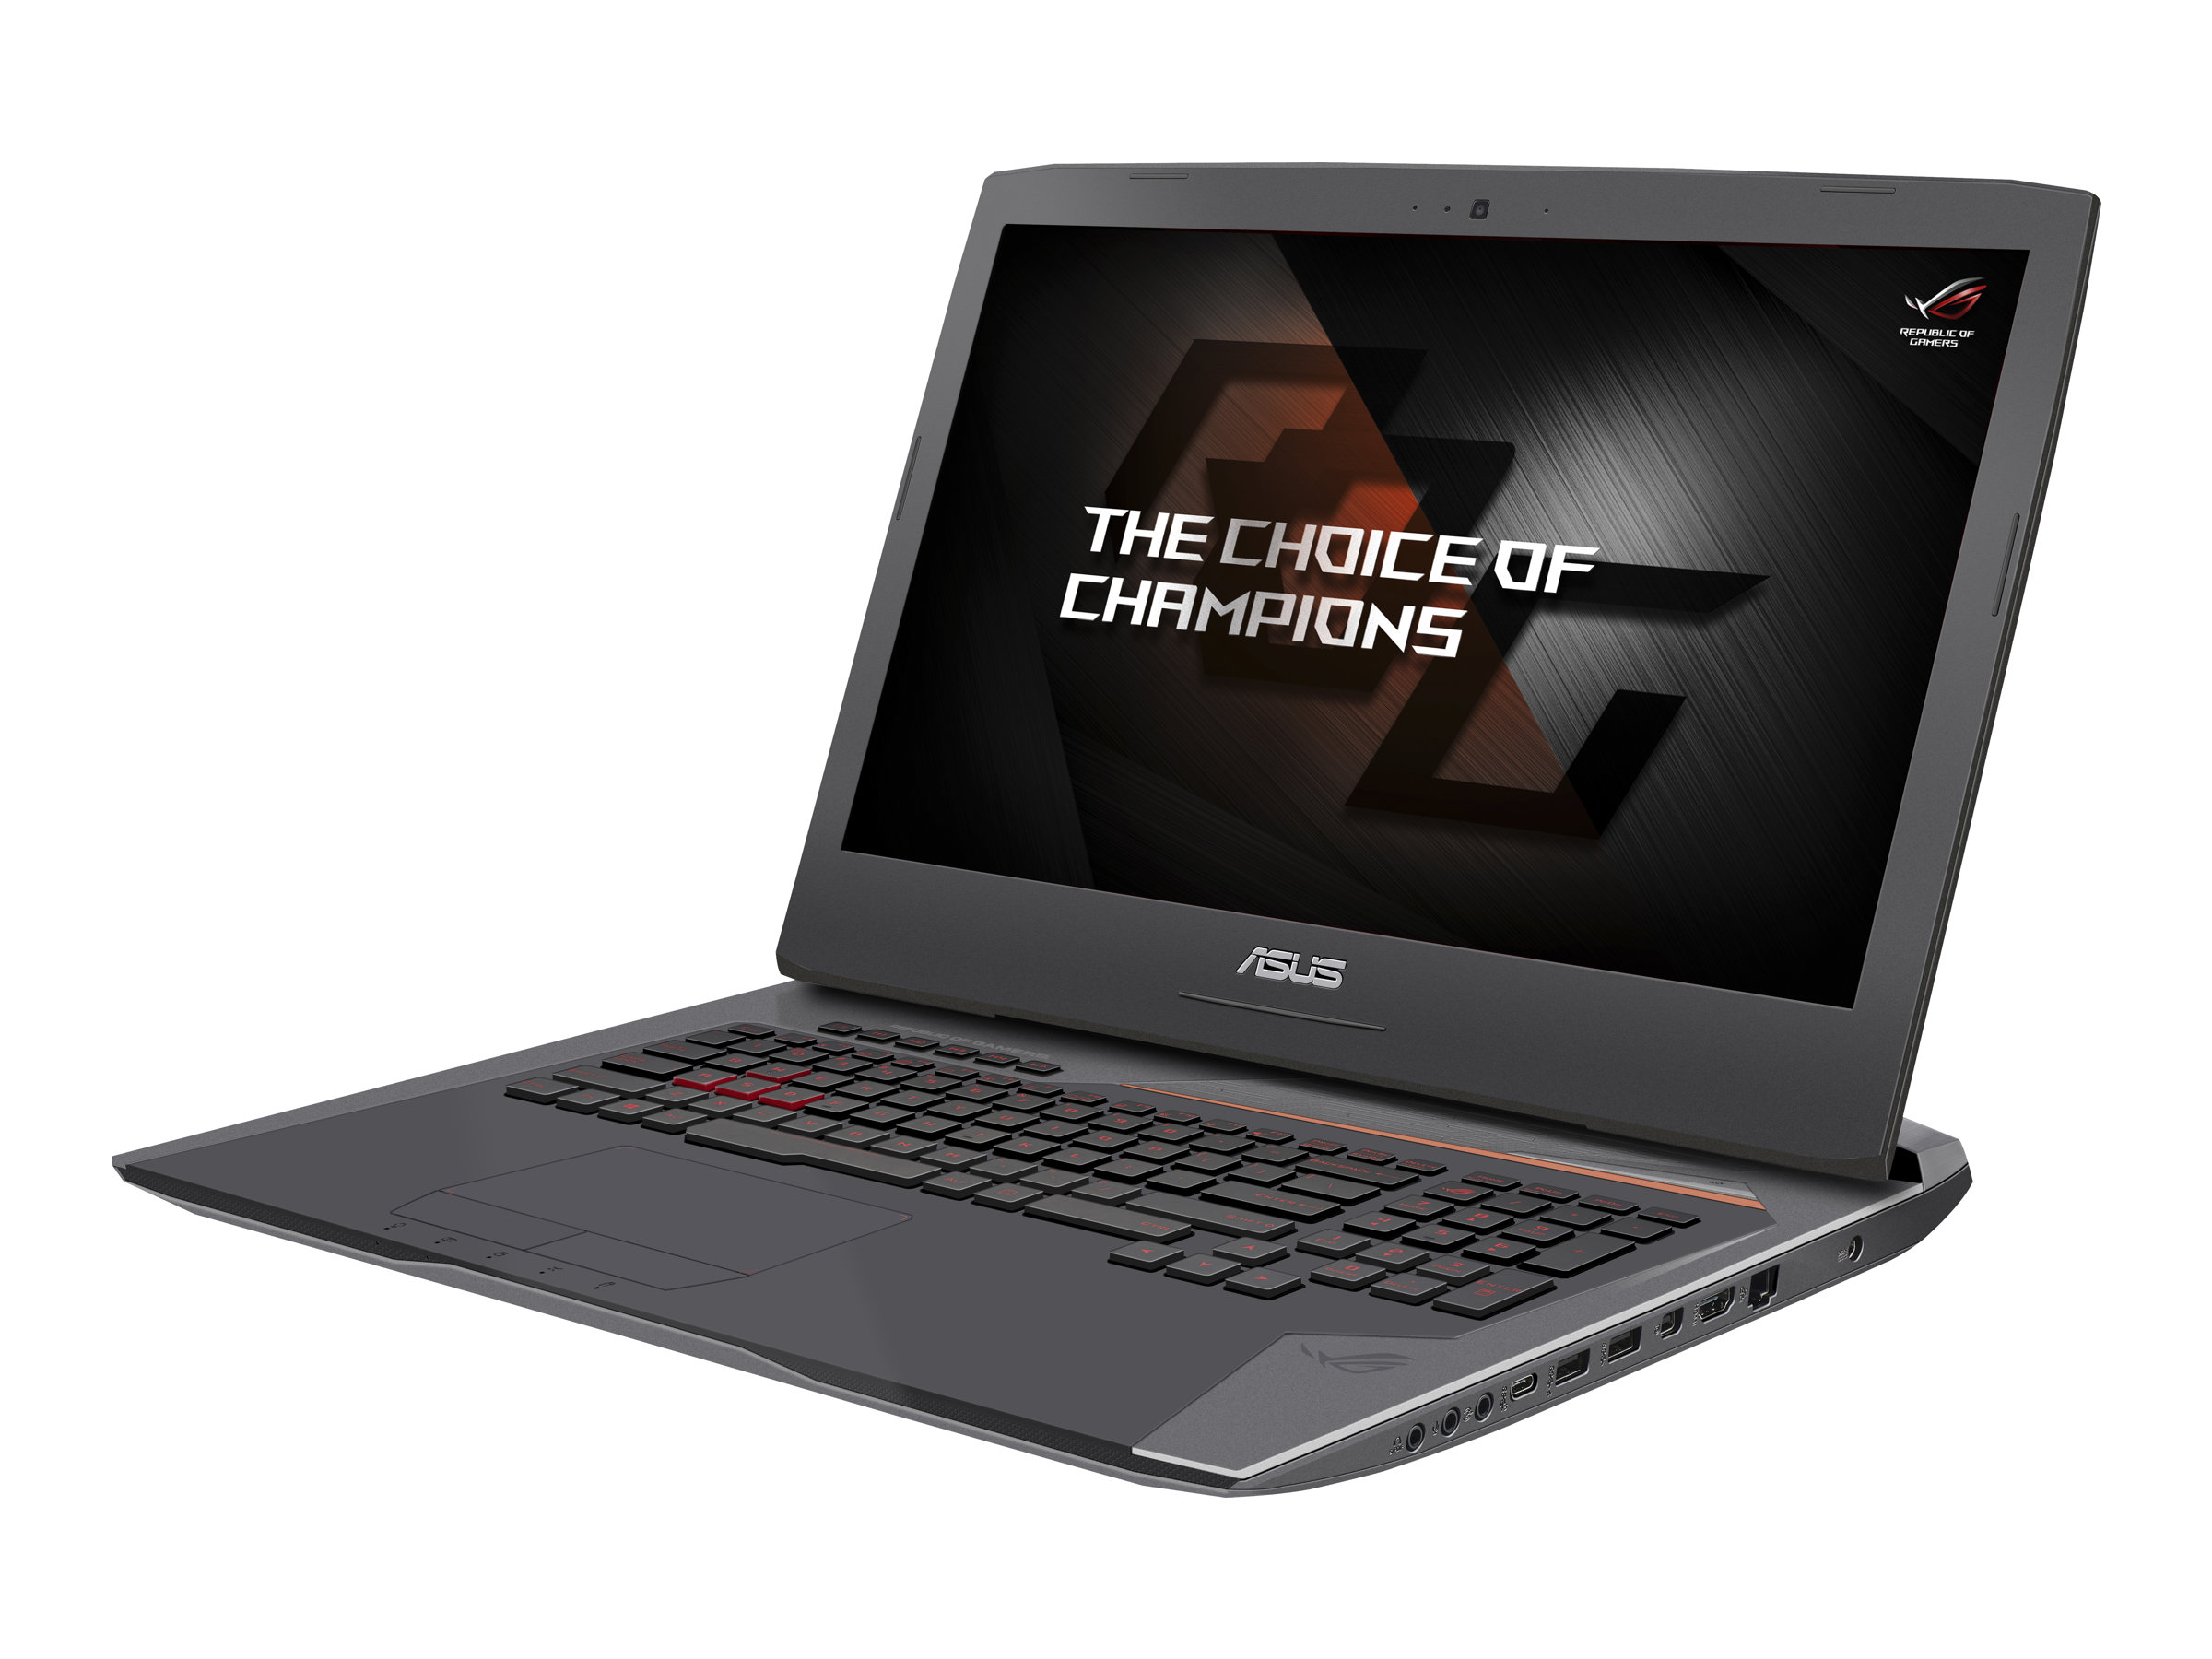 ASUS ROG G752VS GC074T - Core i7 6700HQ / 2.6 GHz - Win 10 Home 64-Bit - 32 GB RAM - 512 GB SSD NVMe (2x) + 1 TB HDD - DVD-Writer